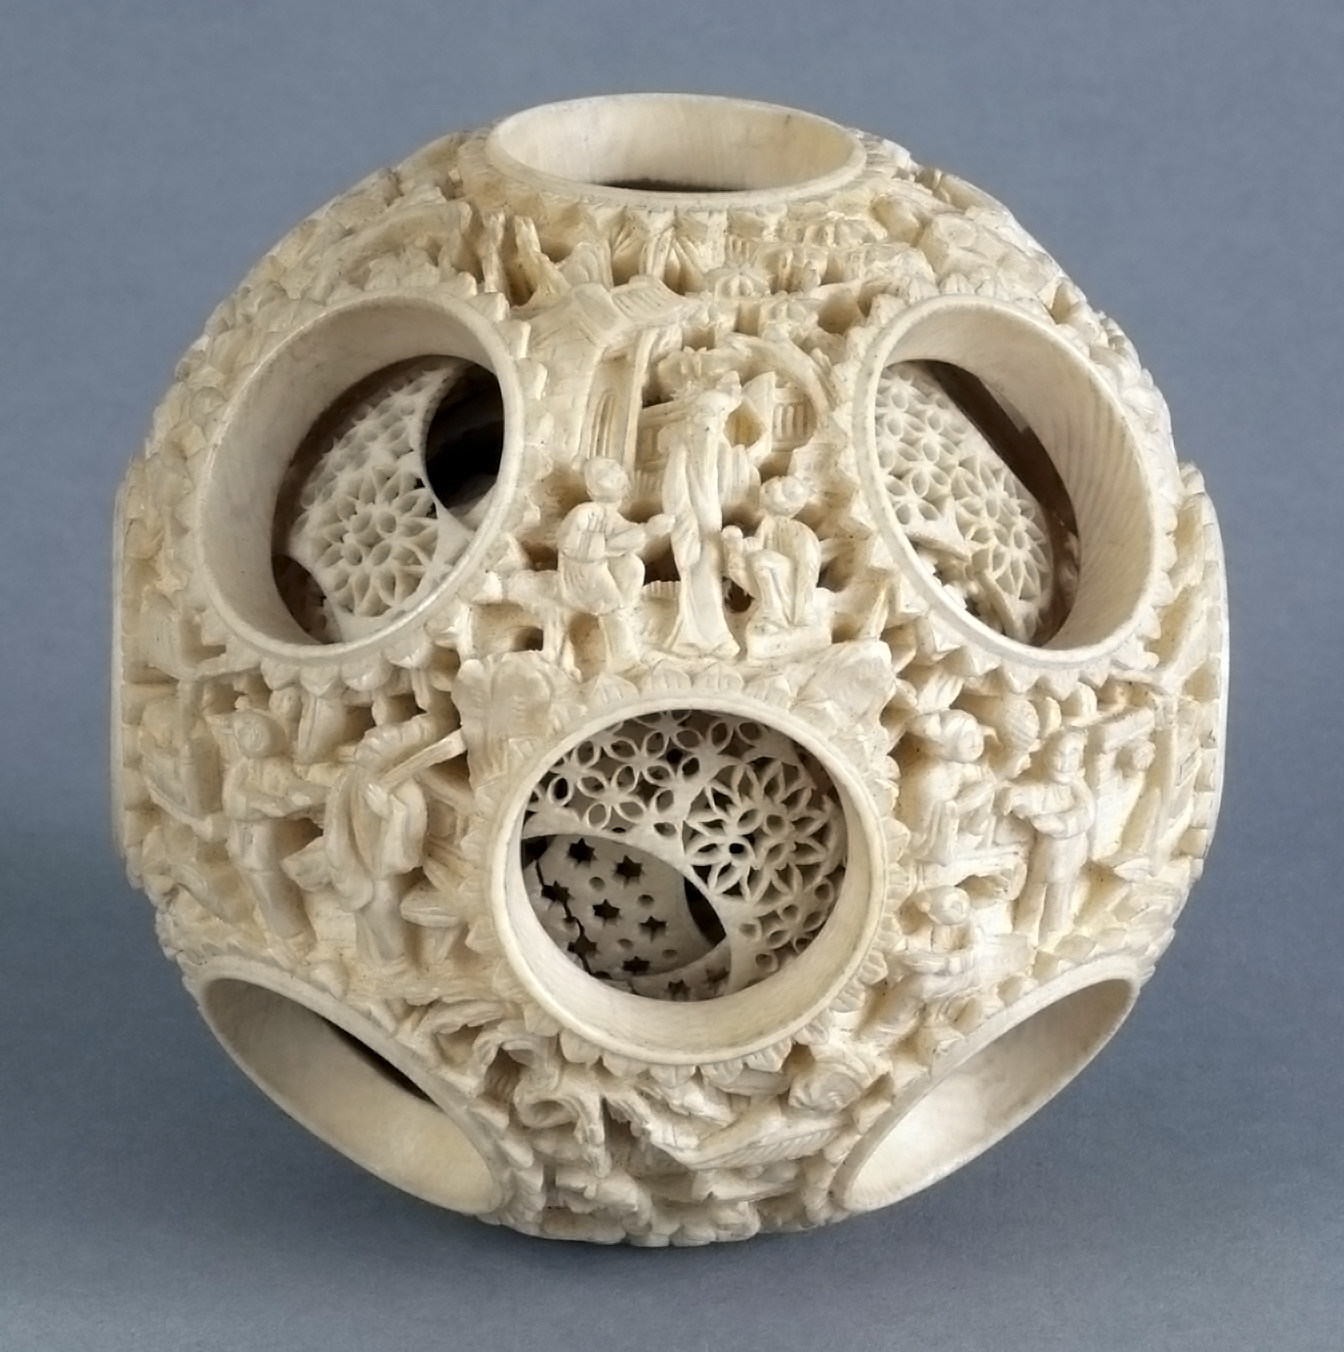 Gallery Of Steven Chilton Architects Guangzhou Theater Is Inspired By The Ancient Chinese Art Of Puzzle Ball Carving 14